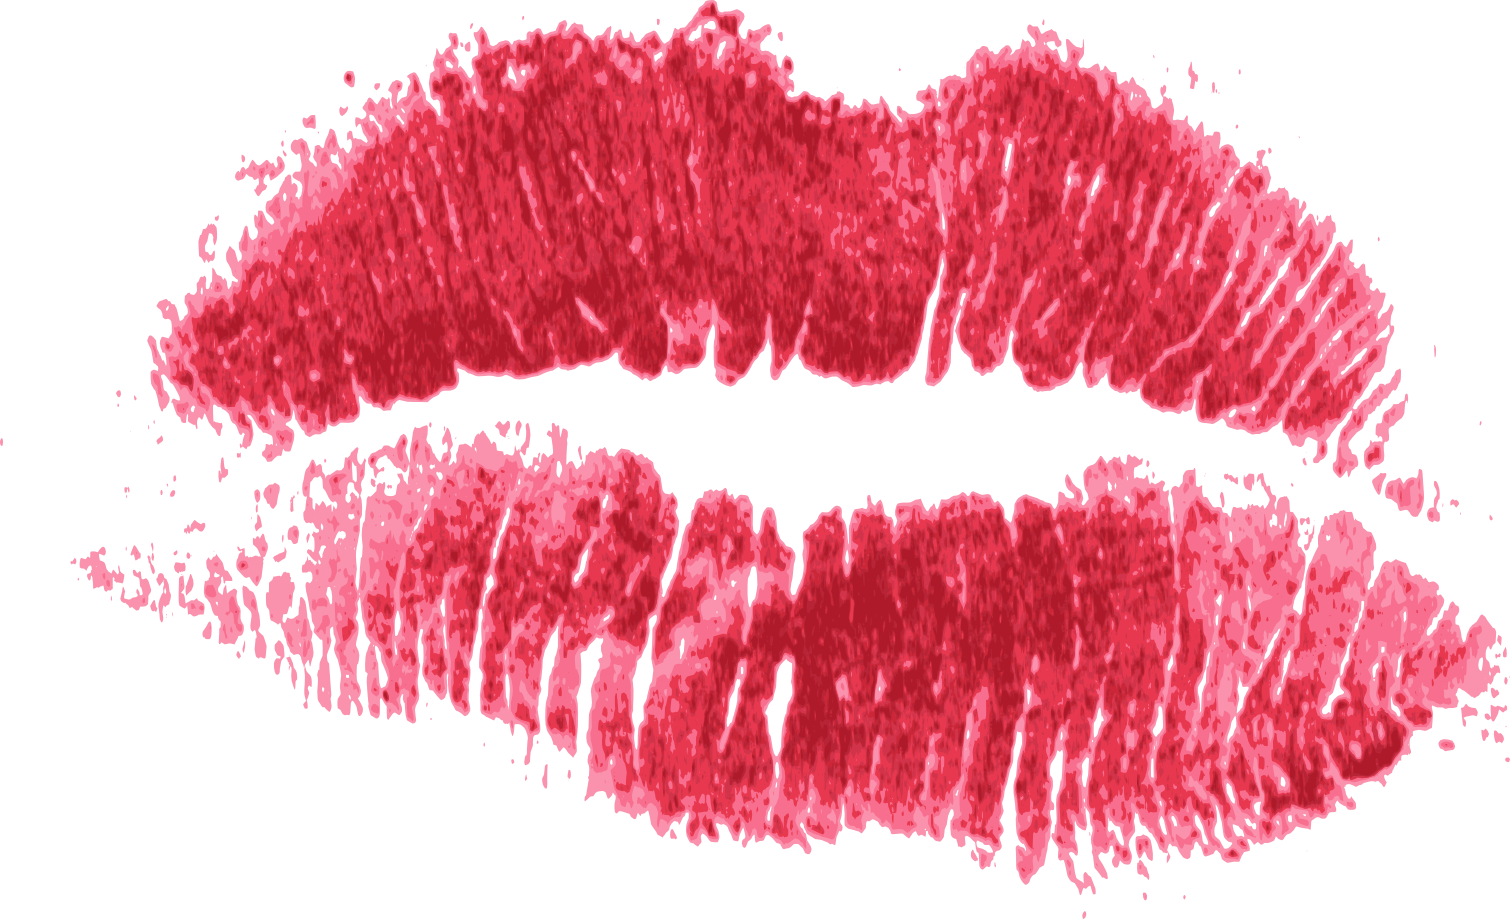 red lip png transparent red lippng images pluspng